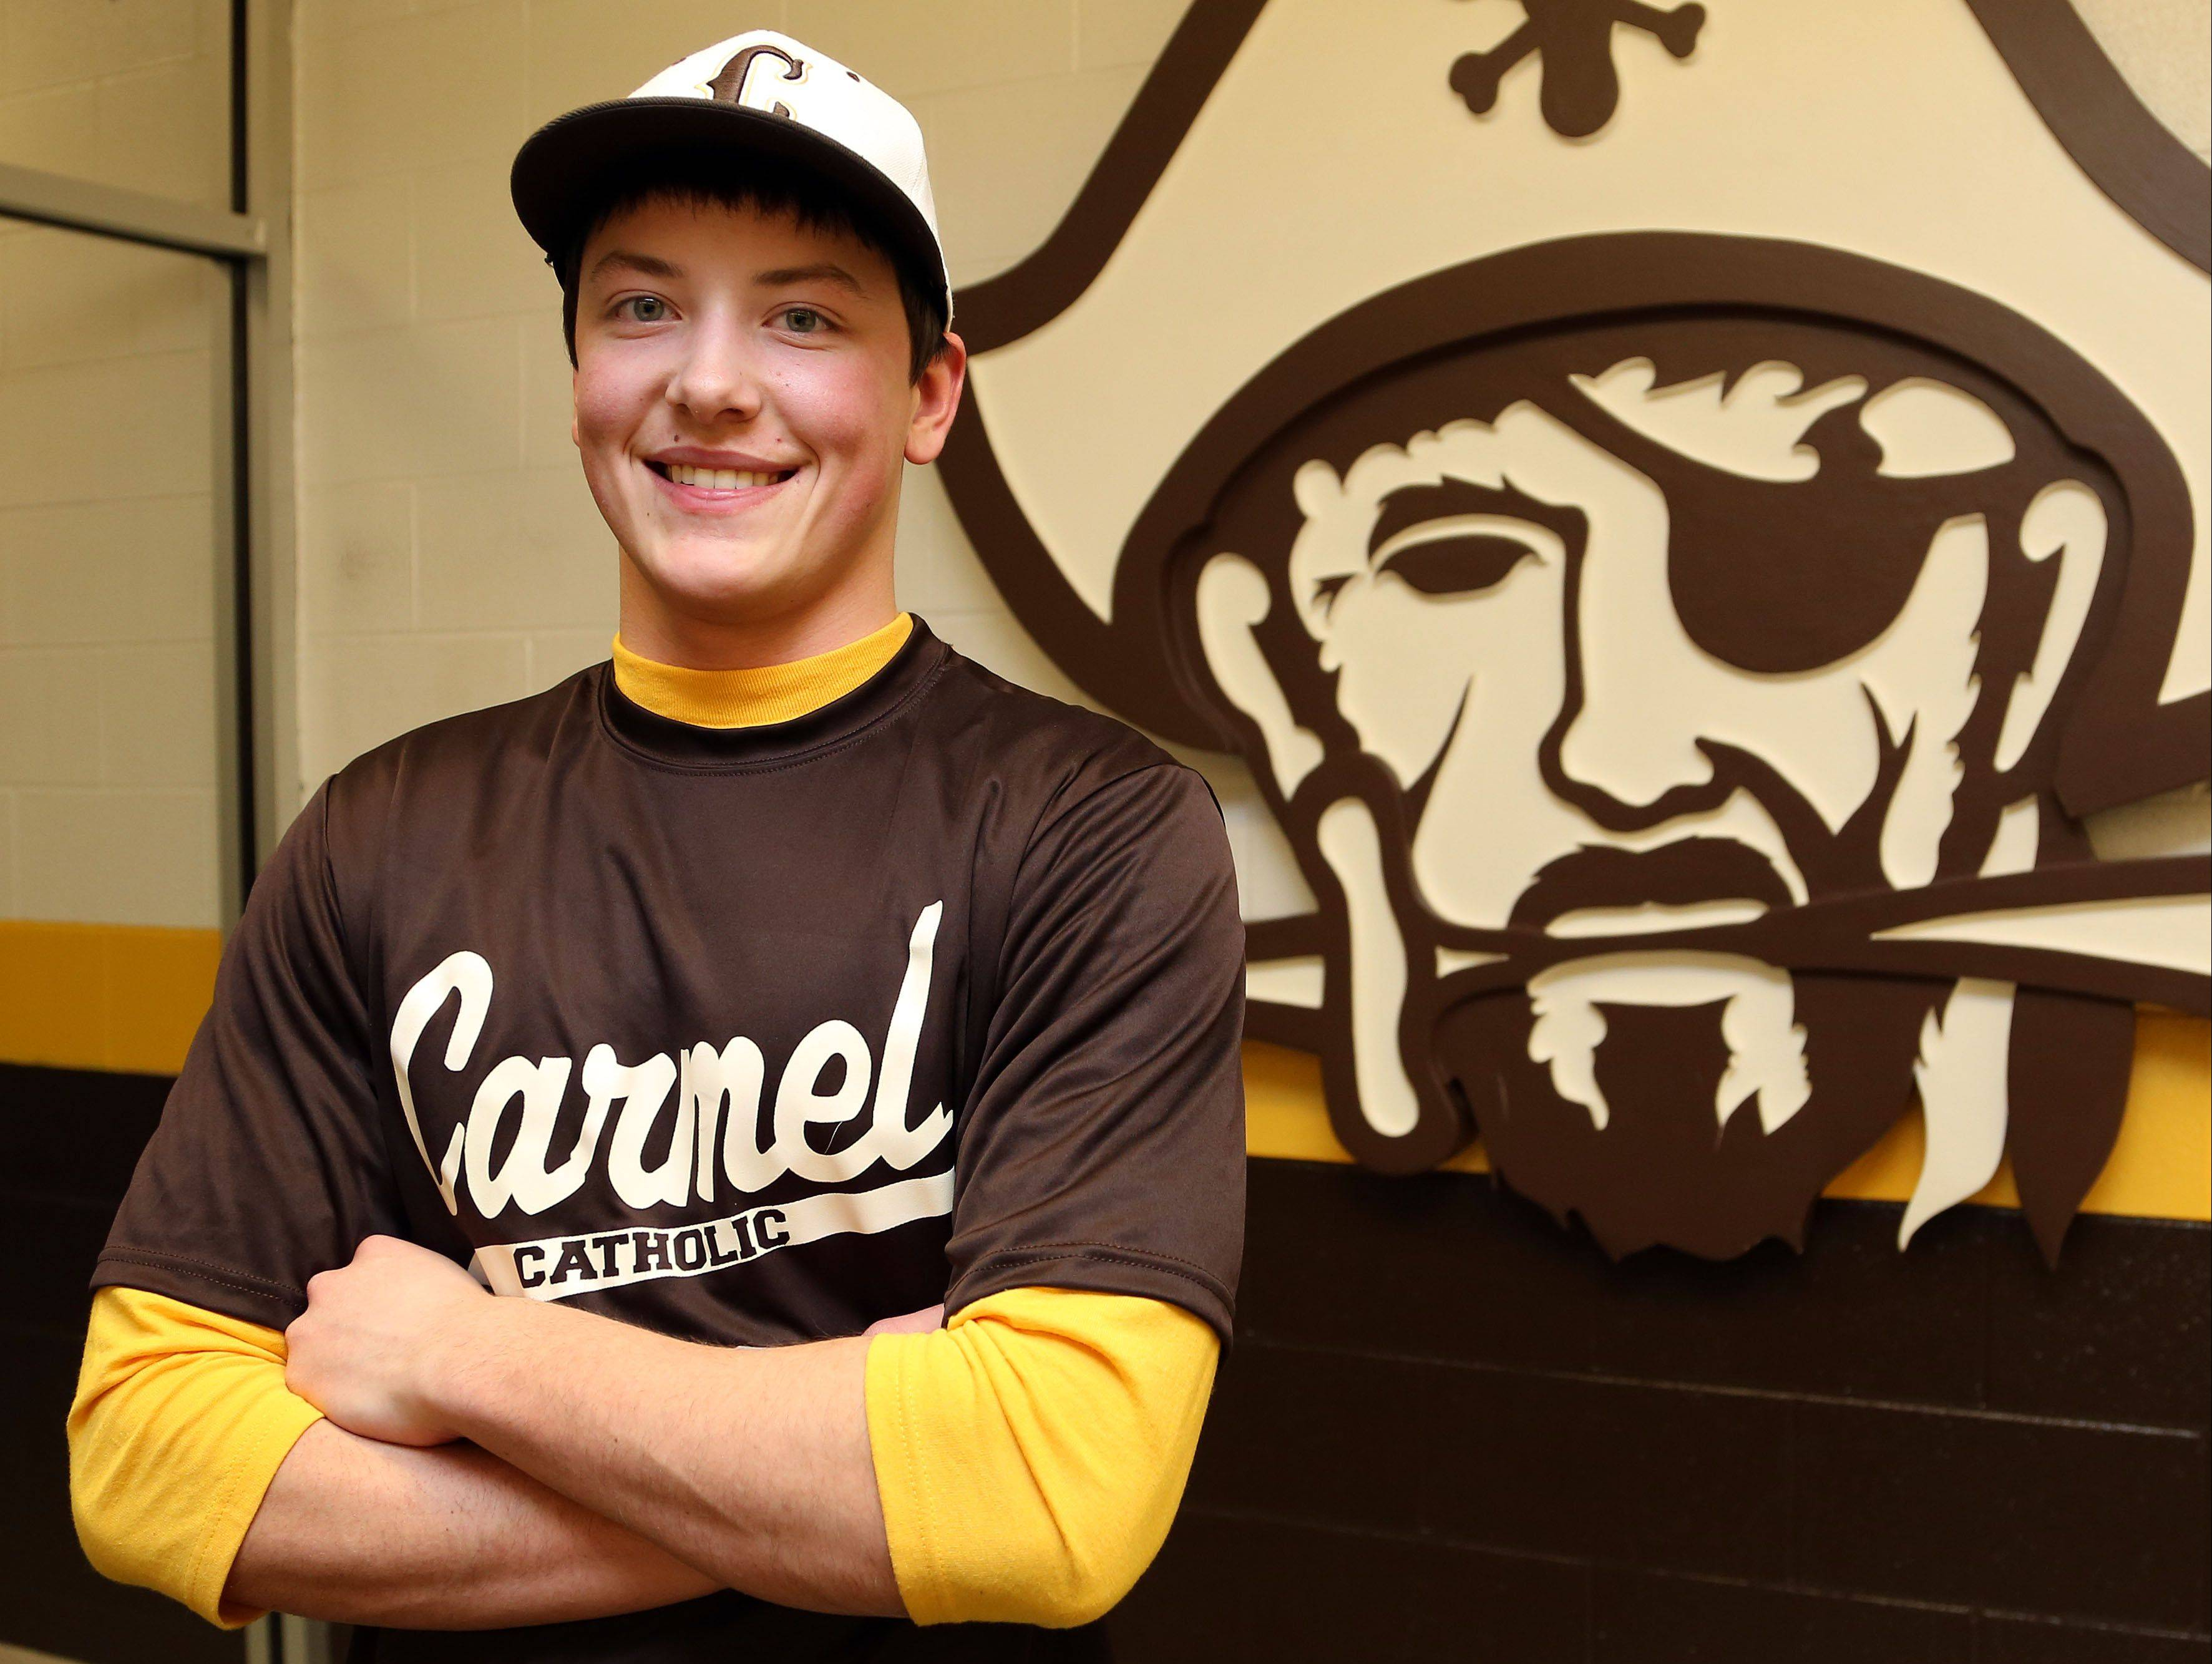 Carmel's Matt Schafer blew out his knee two days before tryouts started, spoiling his senior season. But he's proving to be an inspiration as the team's manager this spring.